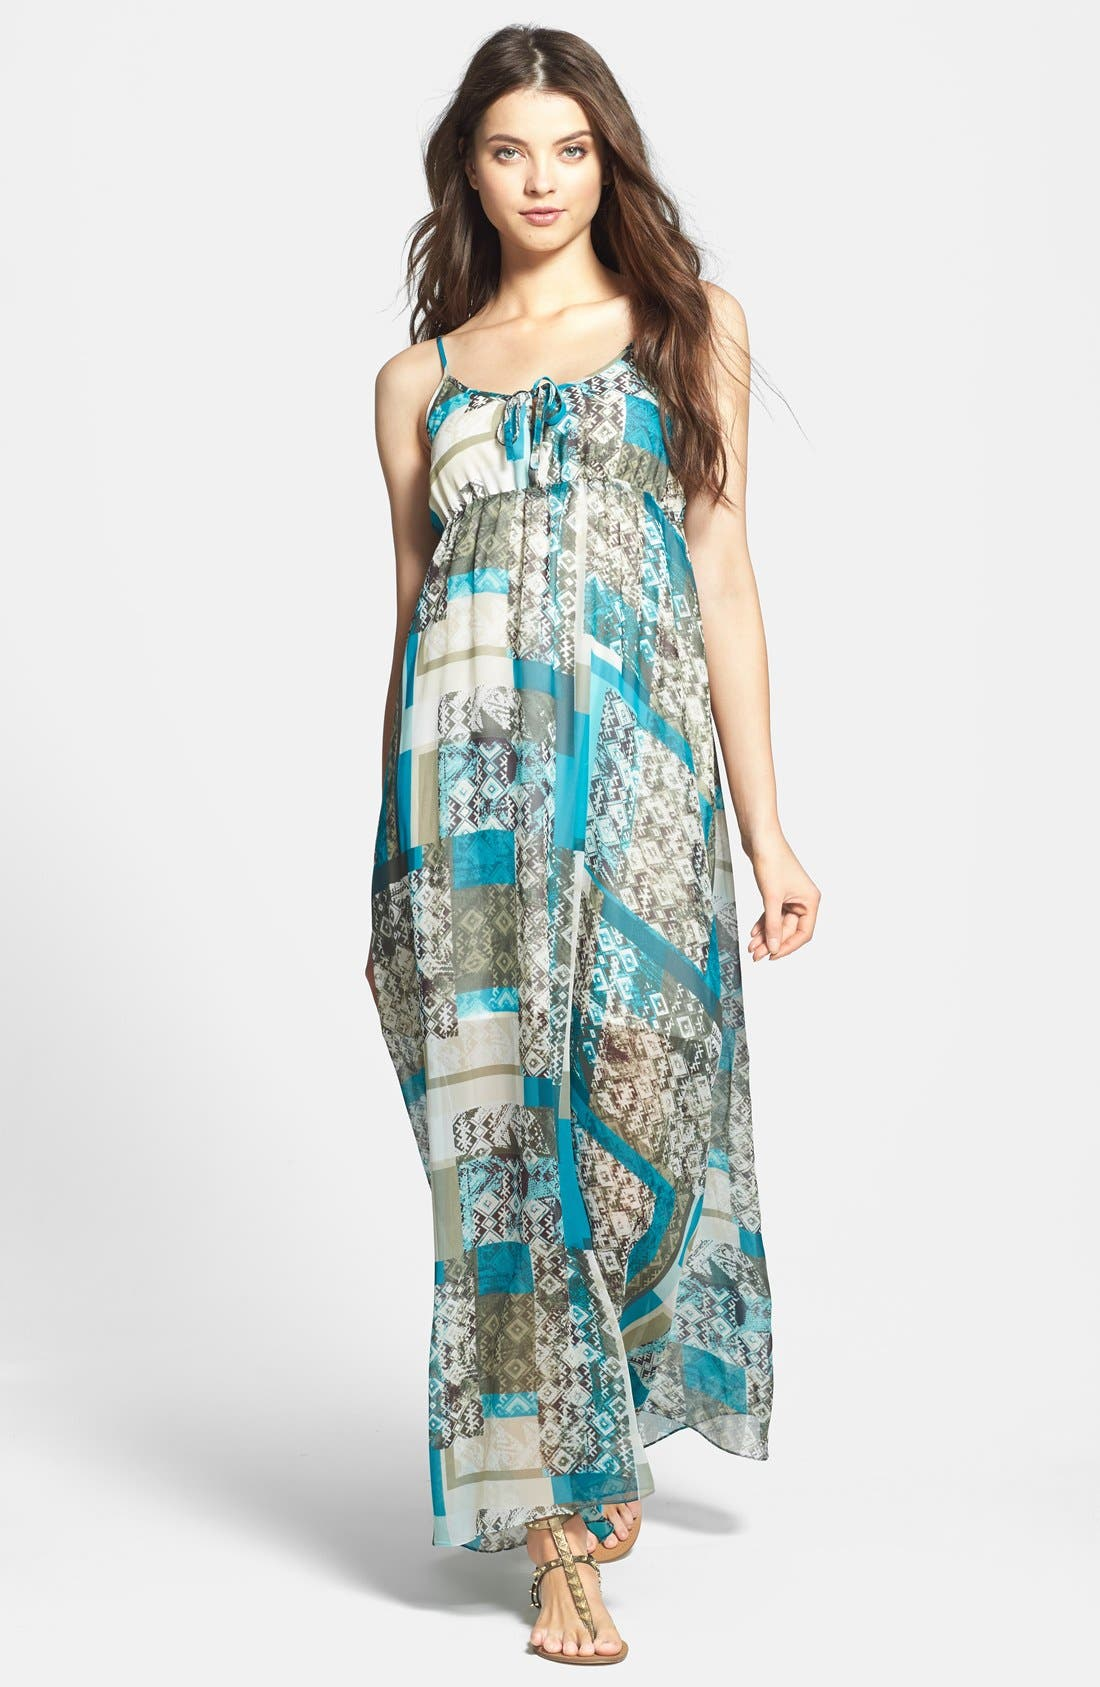 Main Image - Two by Vince Camuto 'Bohemian Patchwork' Maxi Dress